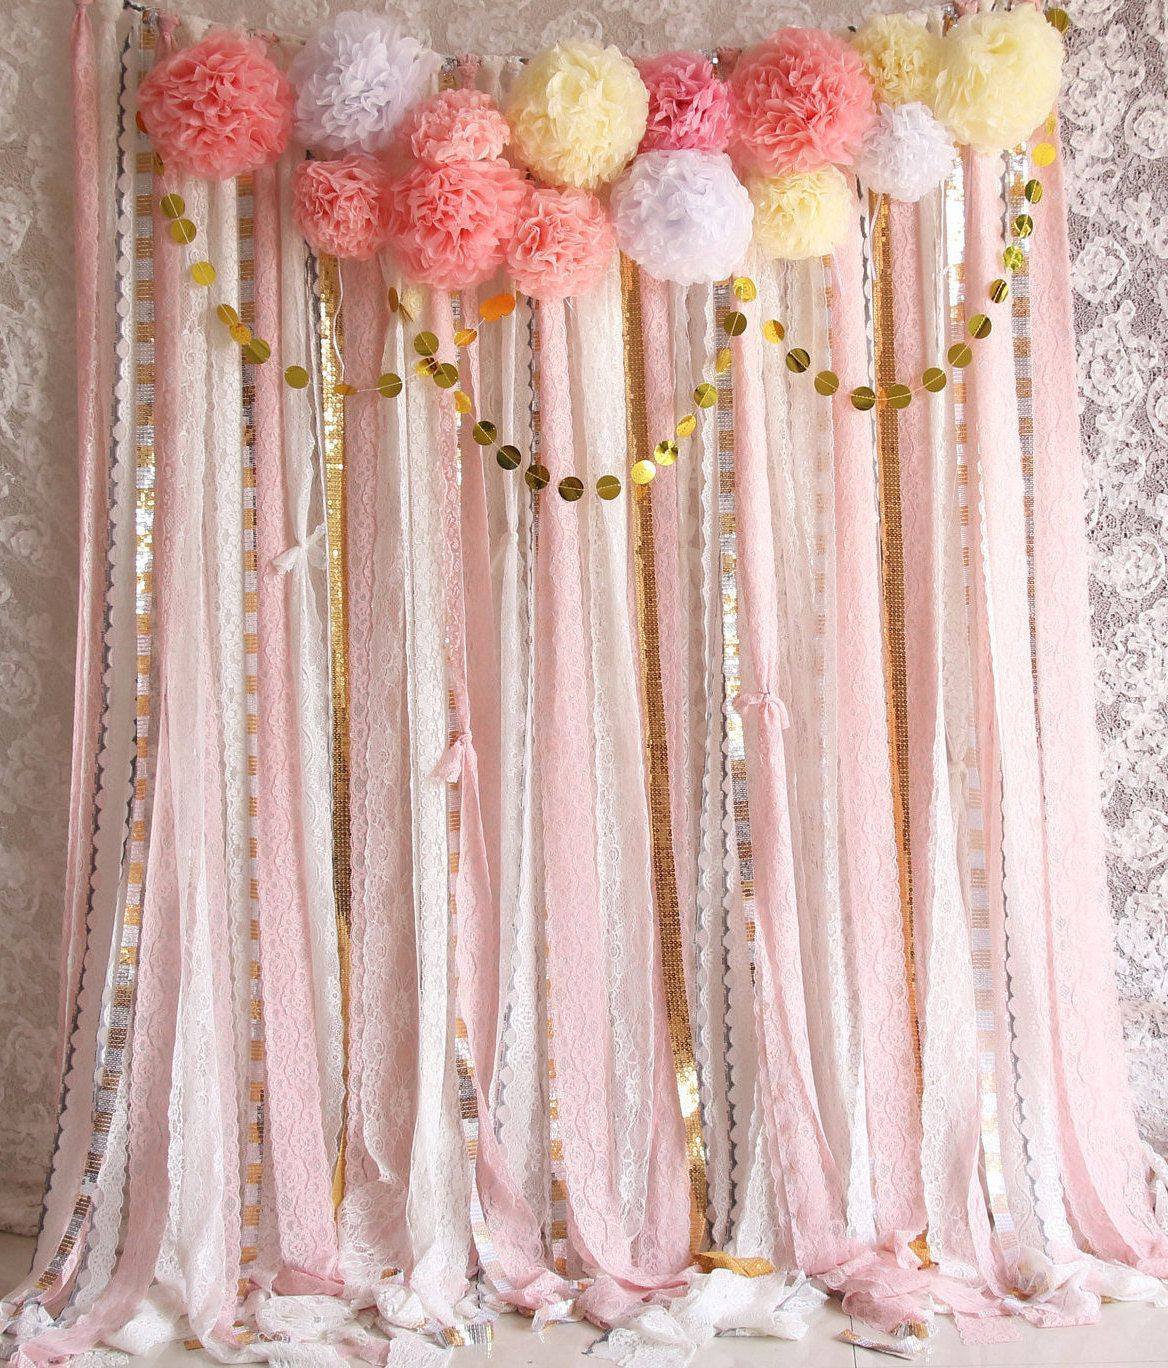 Best ideas about DIY Baby Shower Backdrop . Save or Pin Pink white Lace Pom Poms flowers Sparkle fabric backdrop Now.